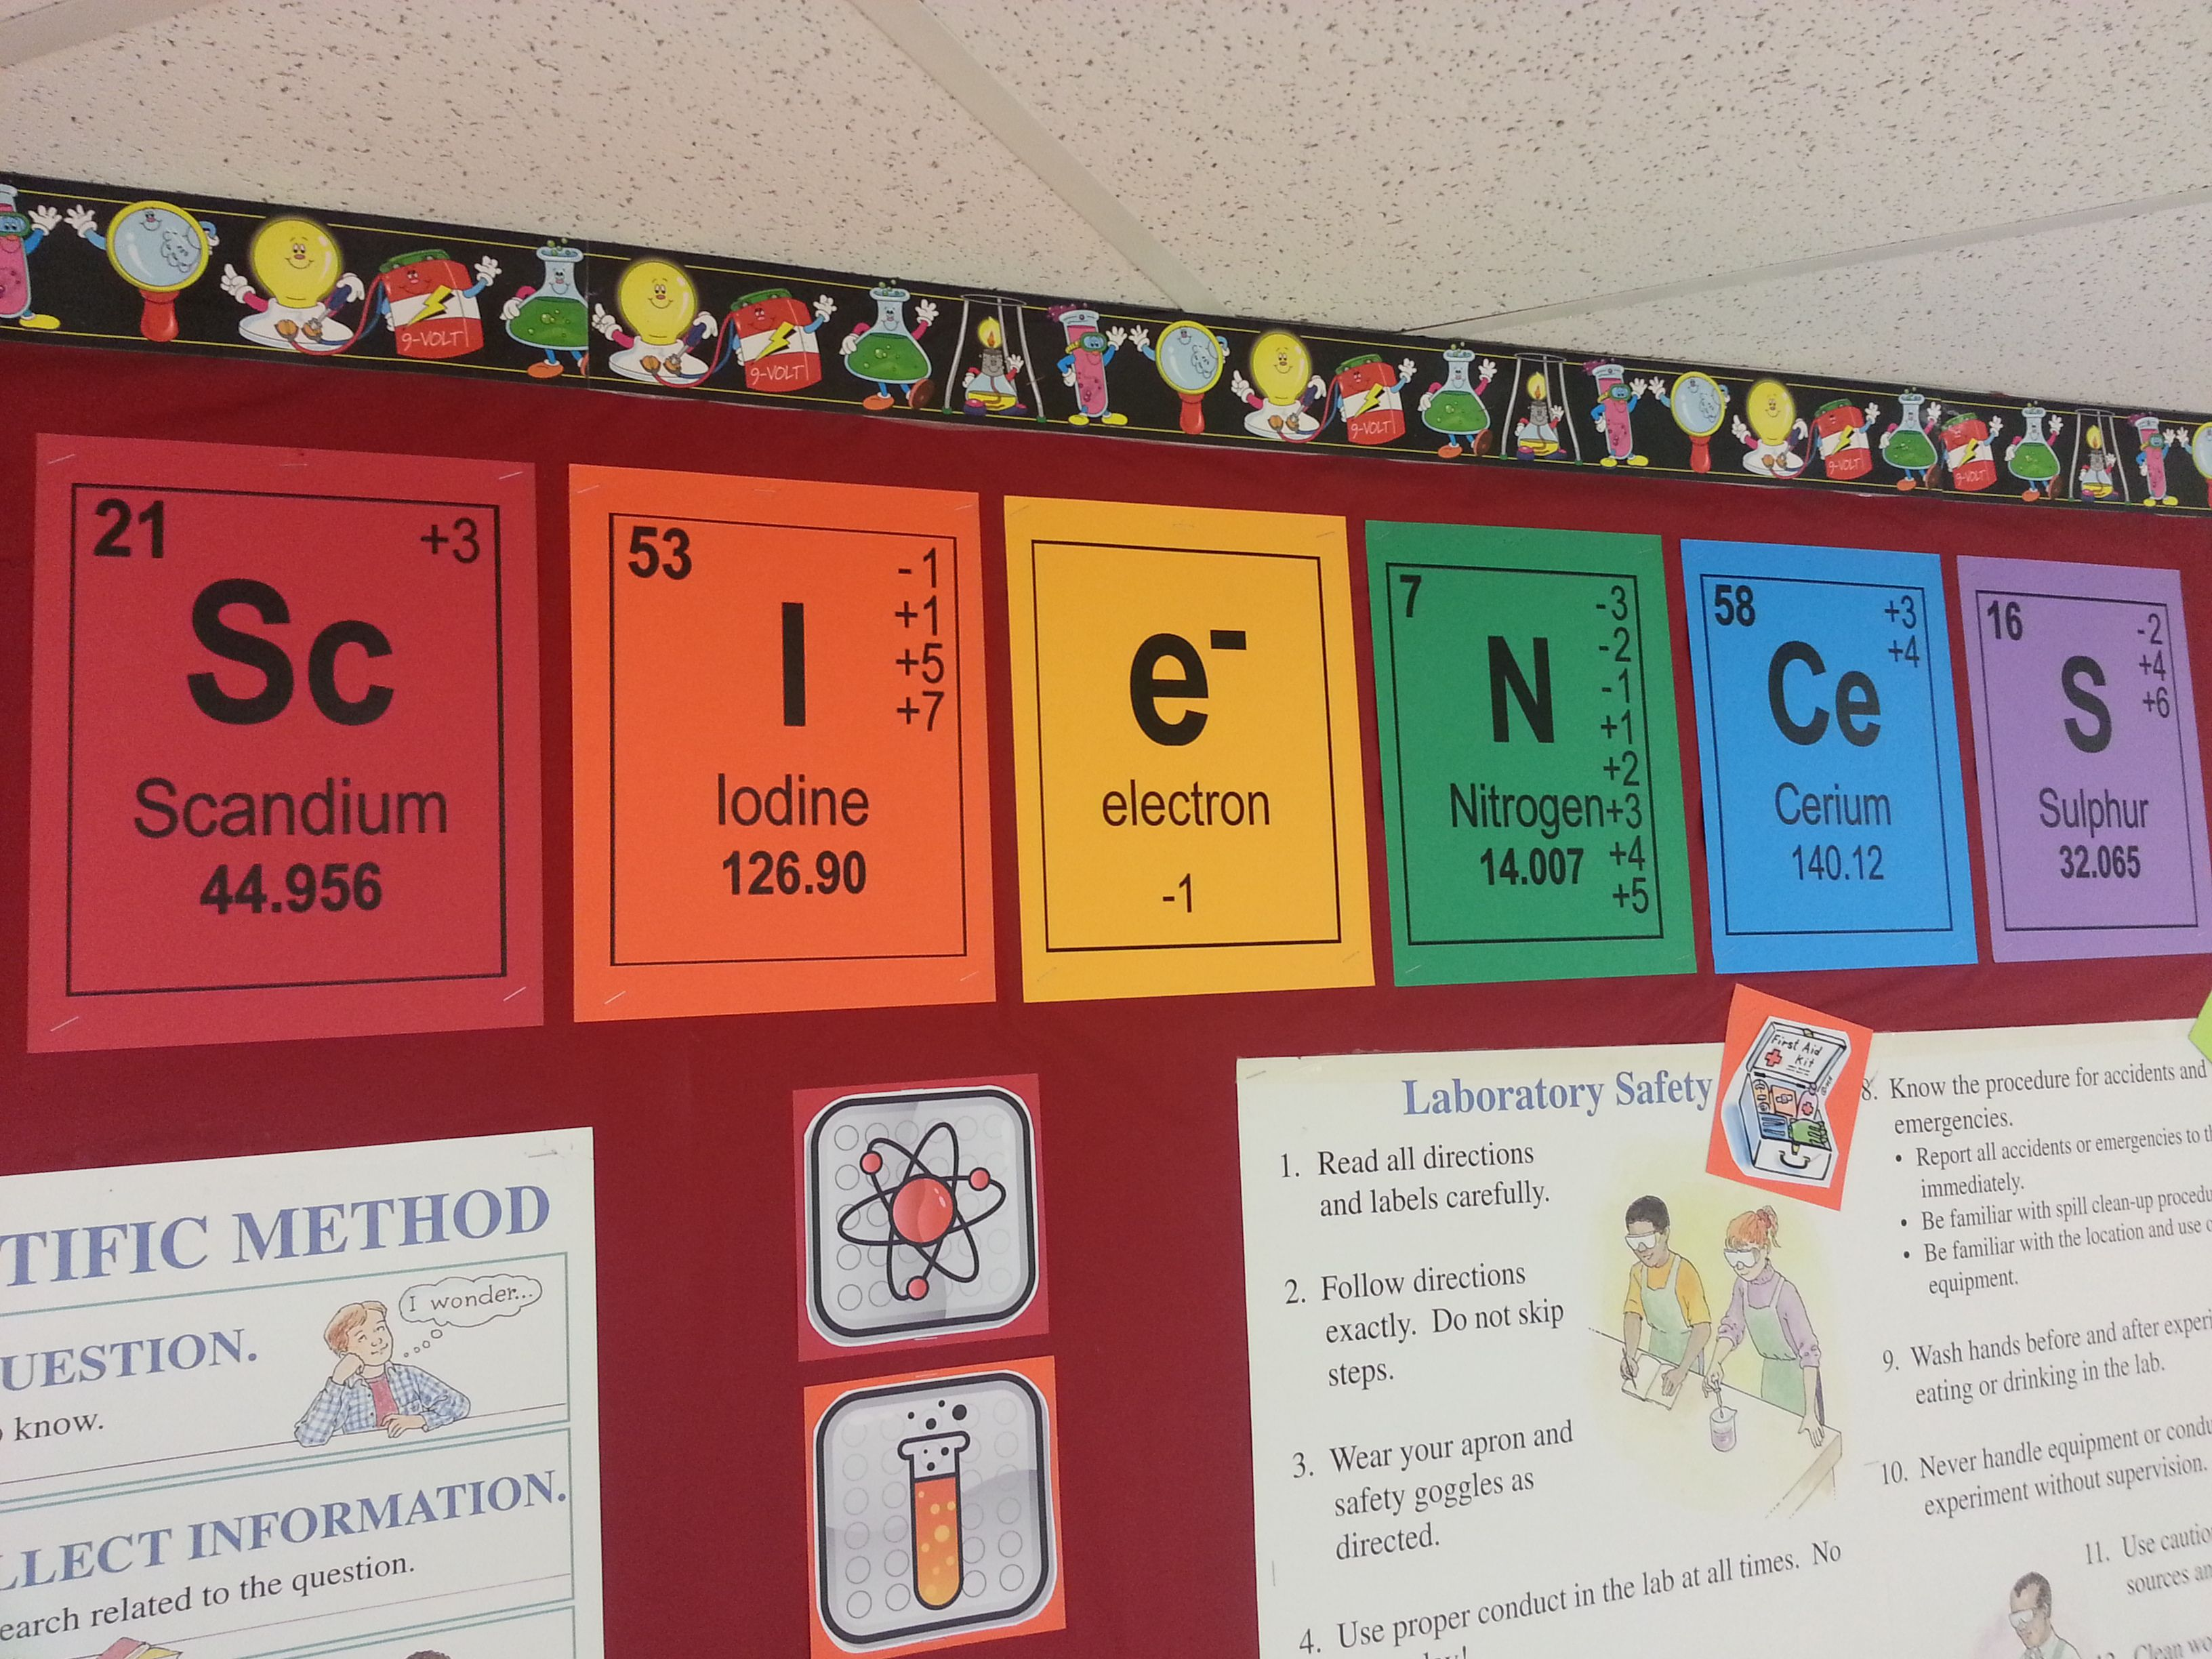 Spell out science sciences en francais using the periodic table spell out science sciences en francais using the periodic table message me and gamestrikefo Choice Image